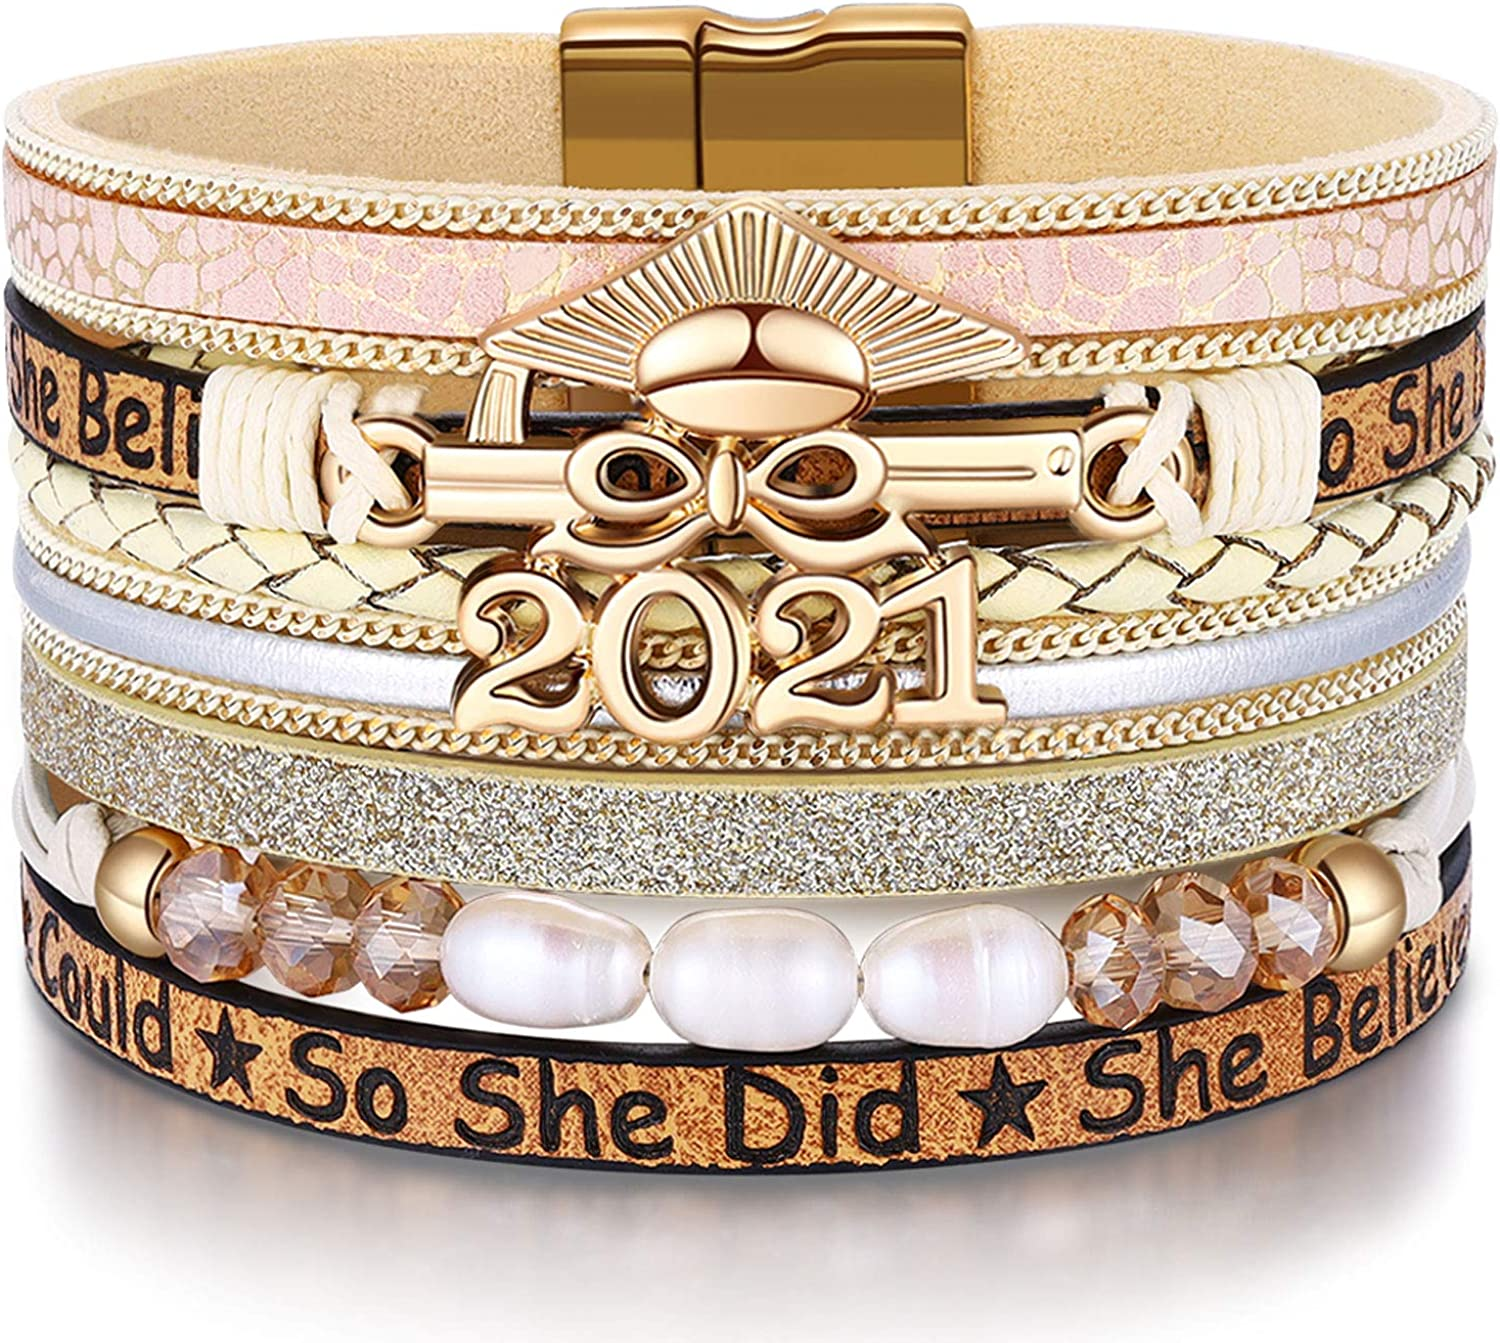 To Daughter Cuff Bangle Bracelet Gift Love Mom Dad To Daughter For 2021 Birthday Xmas Wedding School College University Graduation Gifts